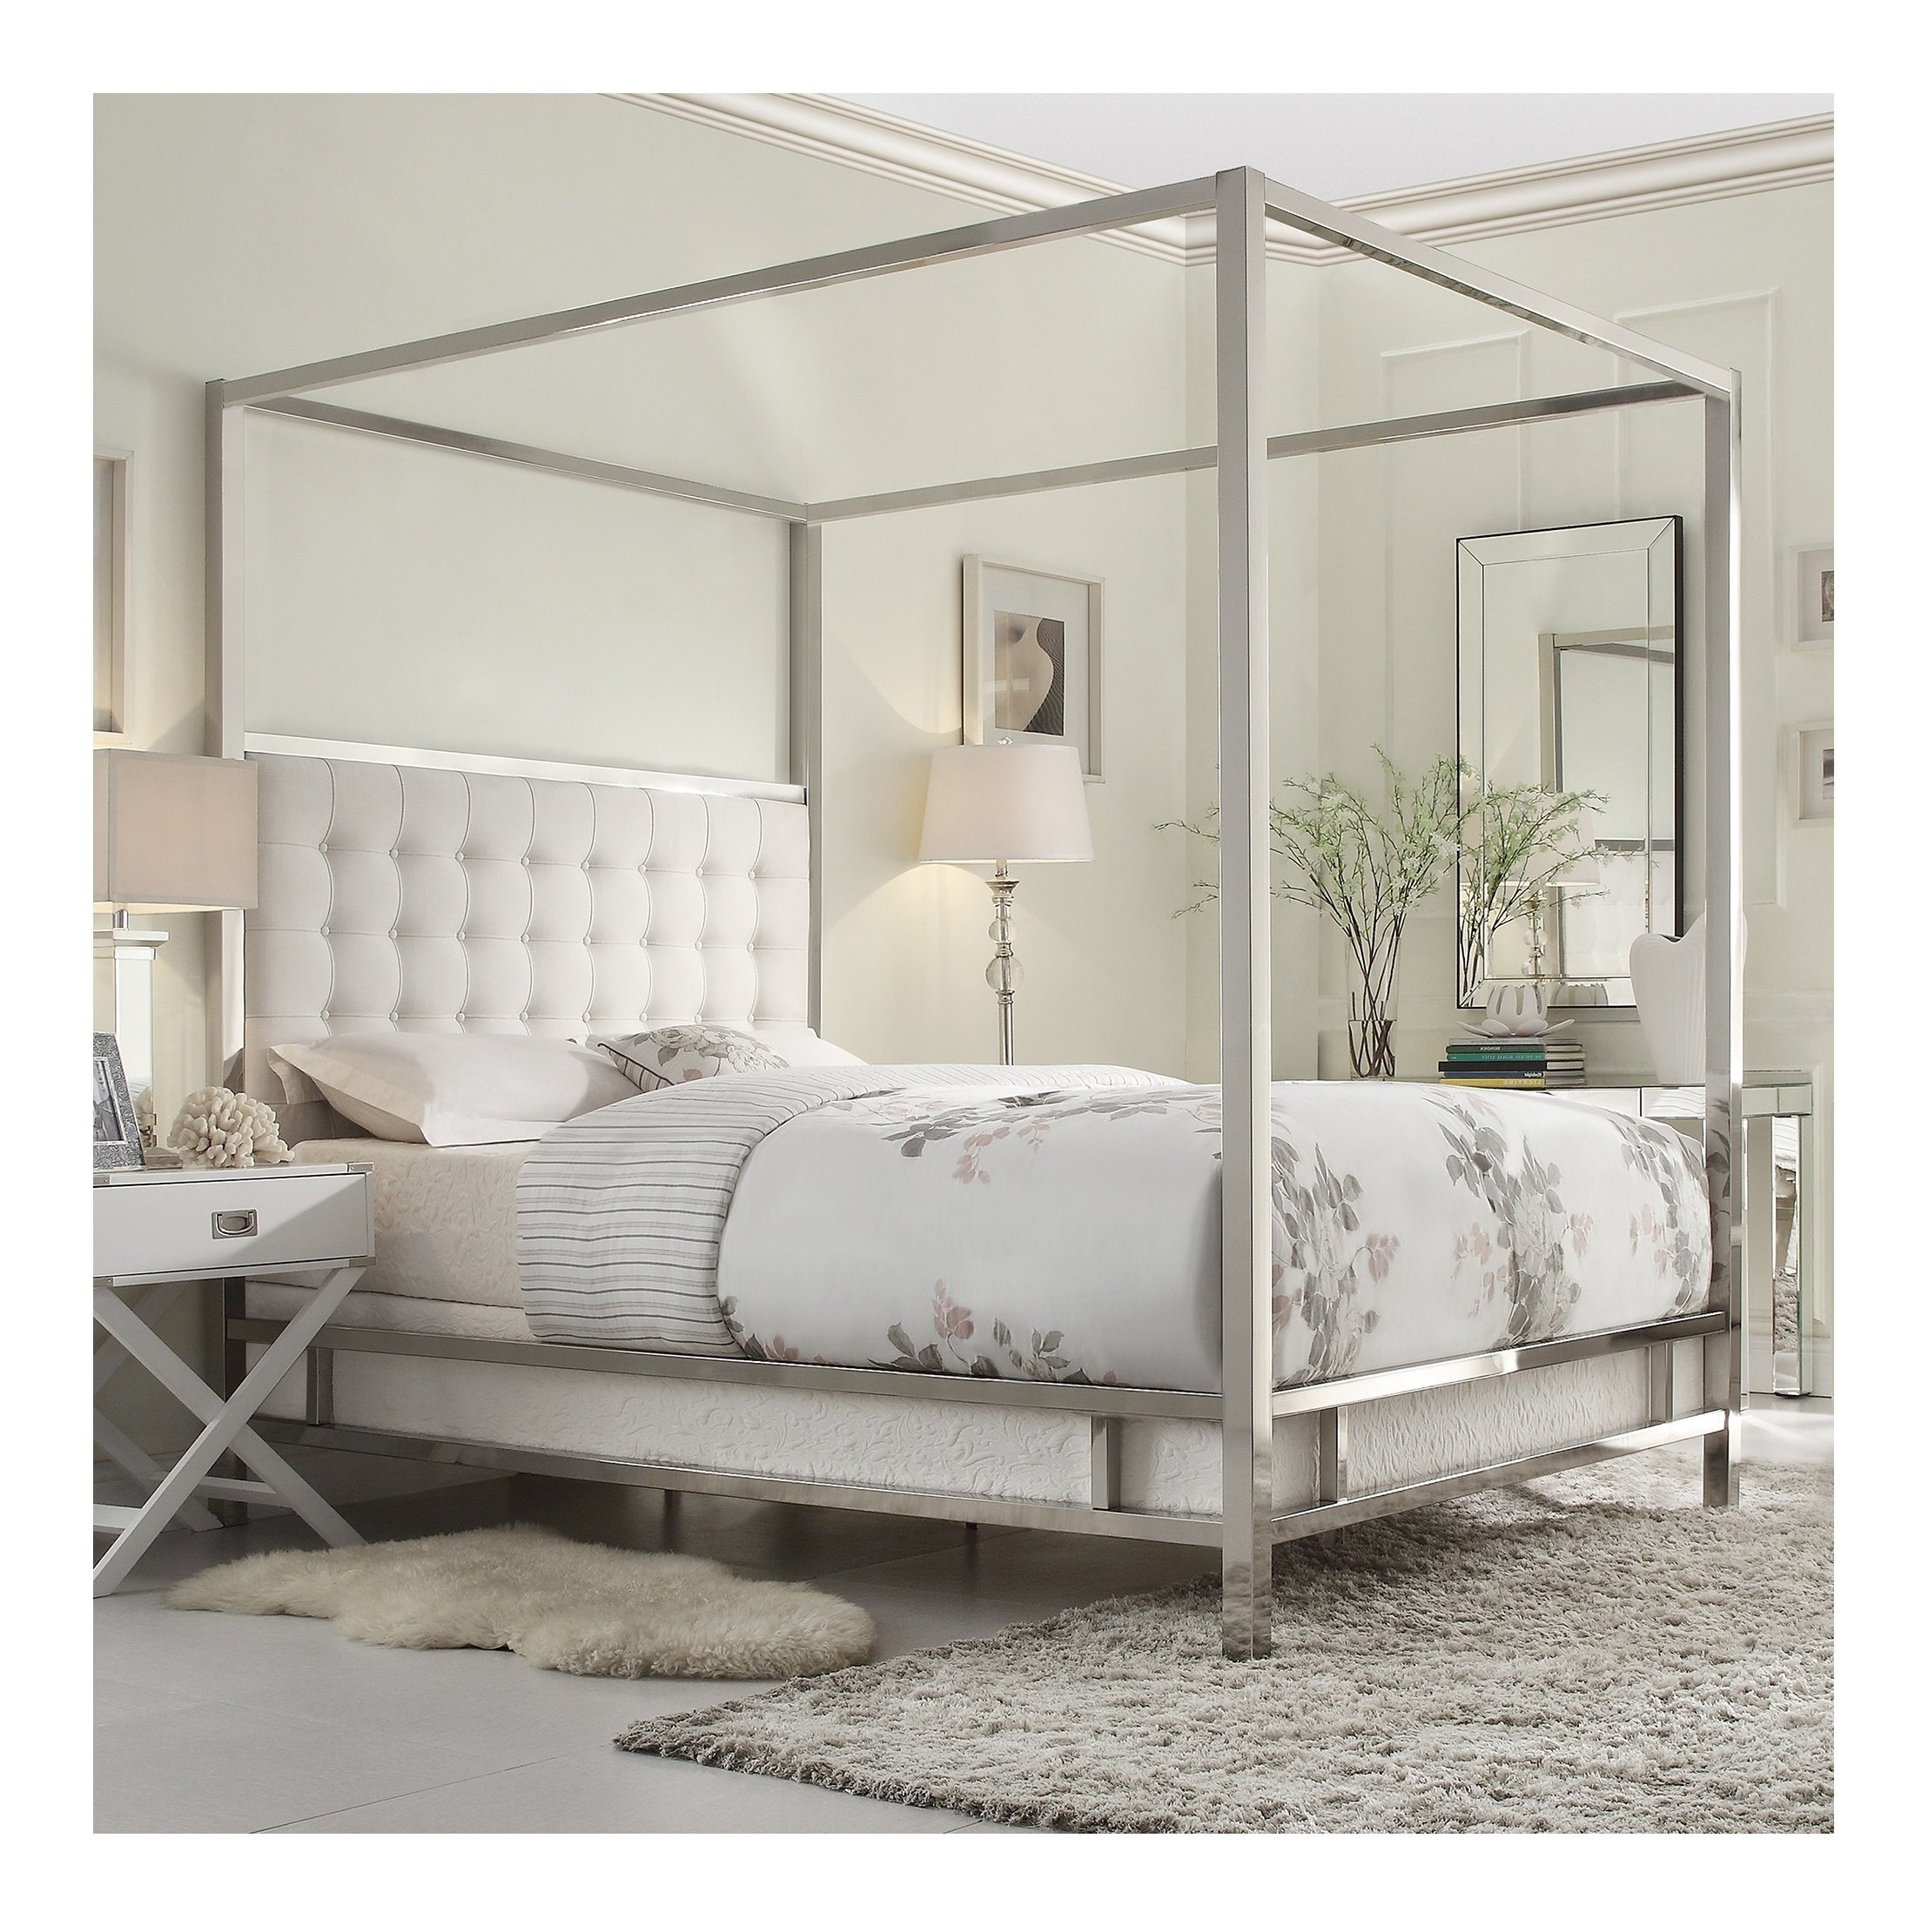 Modern Square Polished Chrome Canopy Poster Queen Bed with Off White Button Tufted Linen Upholstered Headboard Includes ModHaus Living (TM) Pen by ModHaus